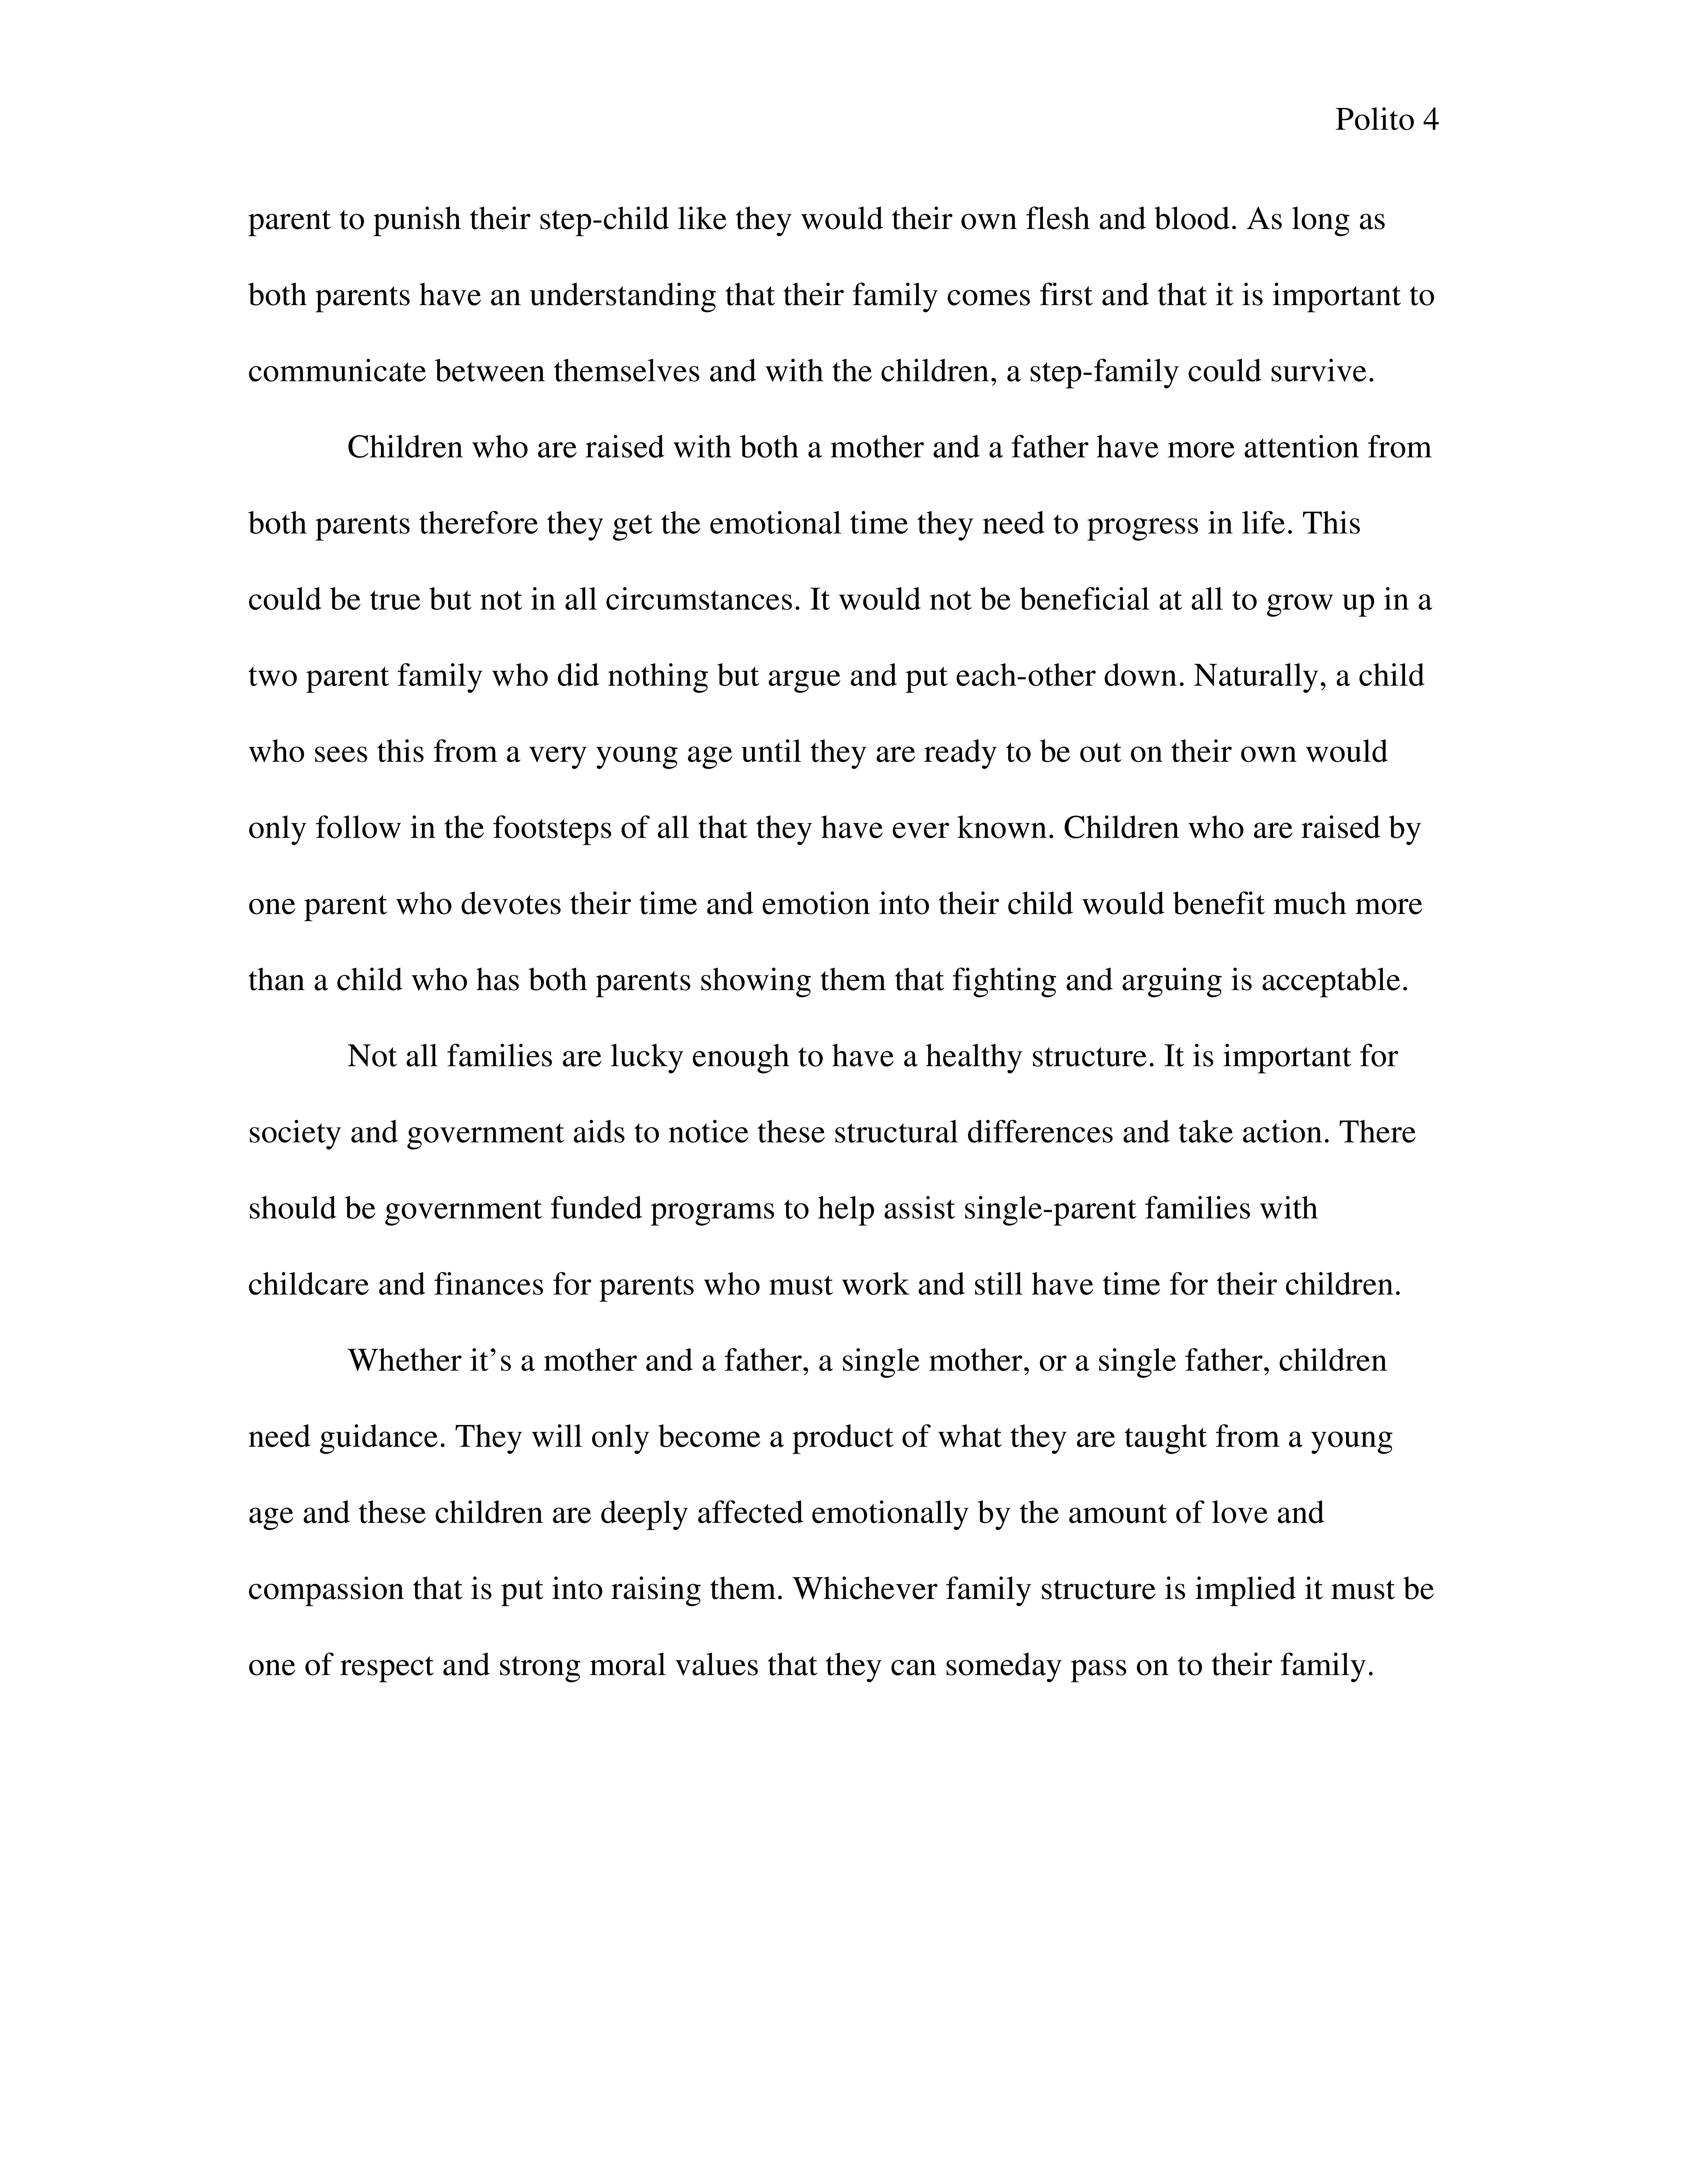 012 Essay Example Expository Sample 2 Impressive Samples Topics Grade 5 O Level Essays For High School Students Full